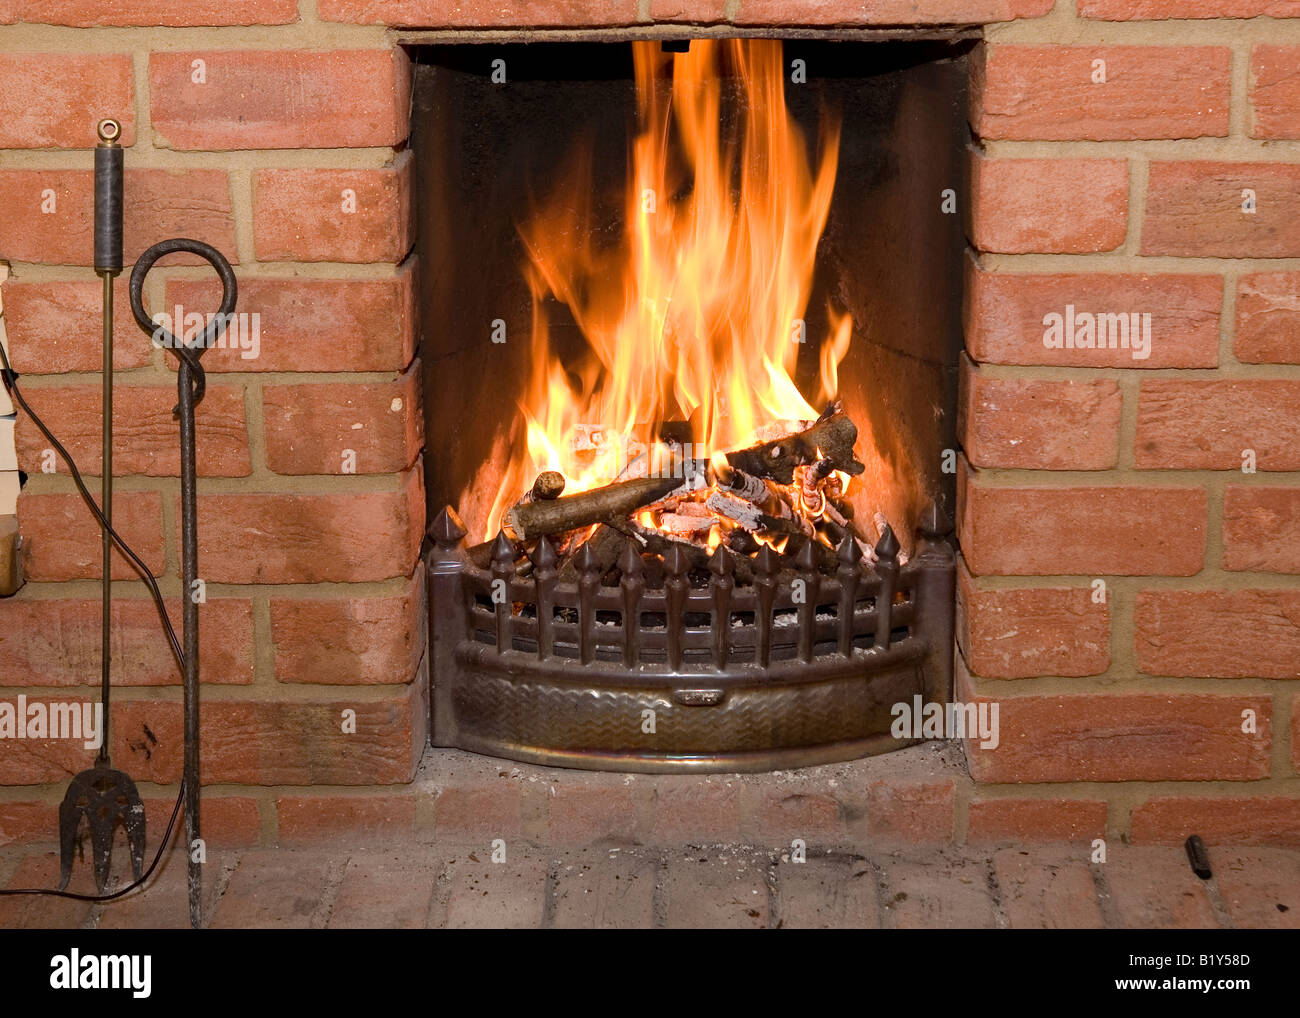 Open Fire Burning In A Brick Fireplace Stock Photo